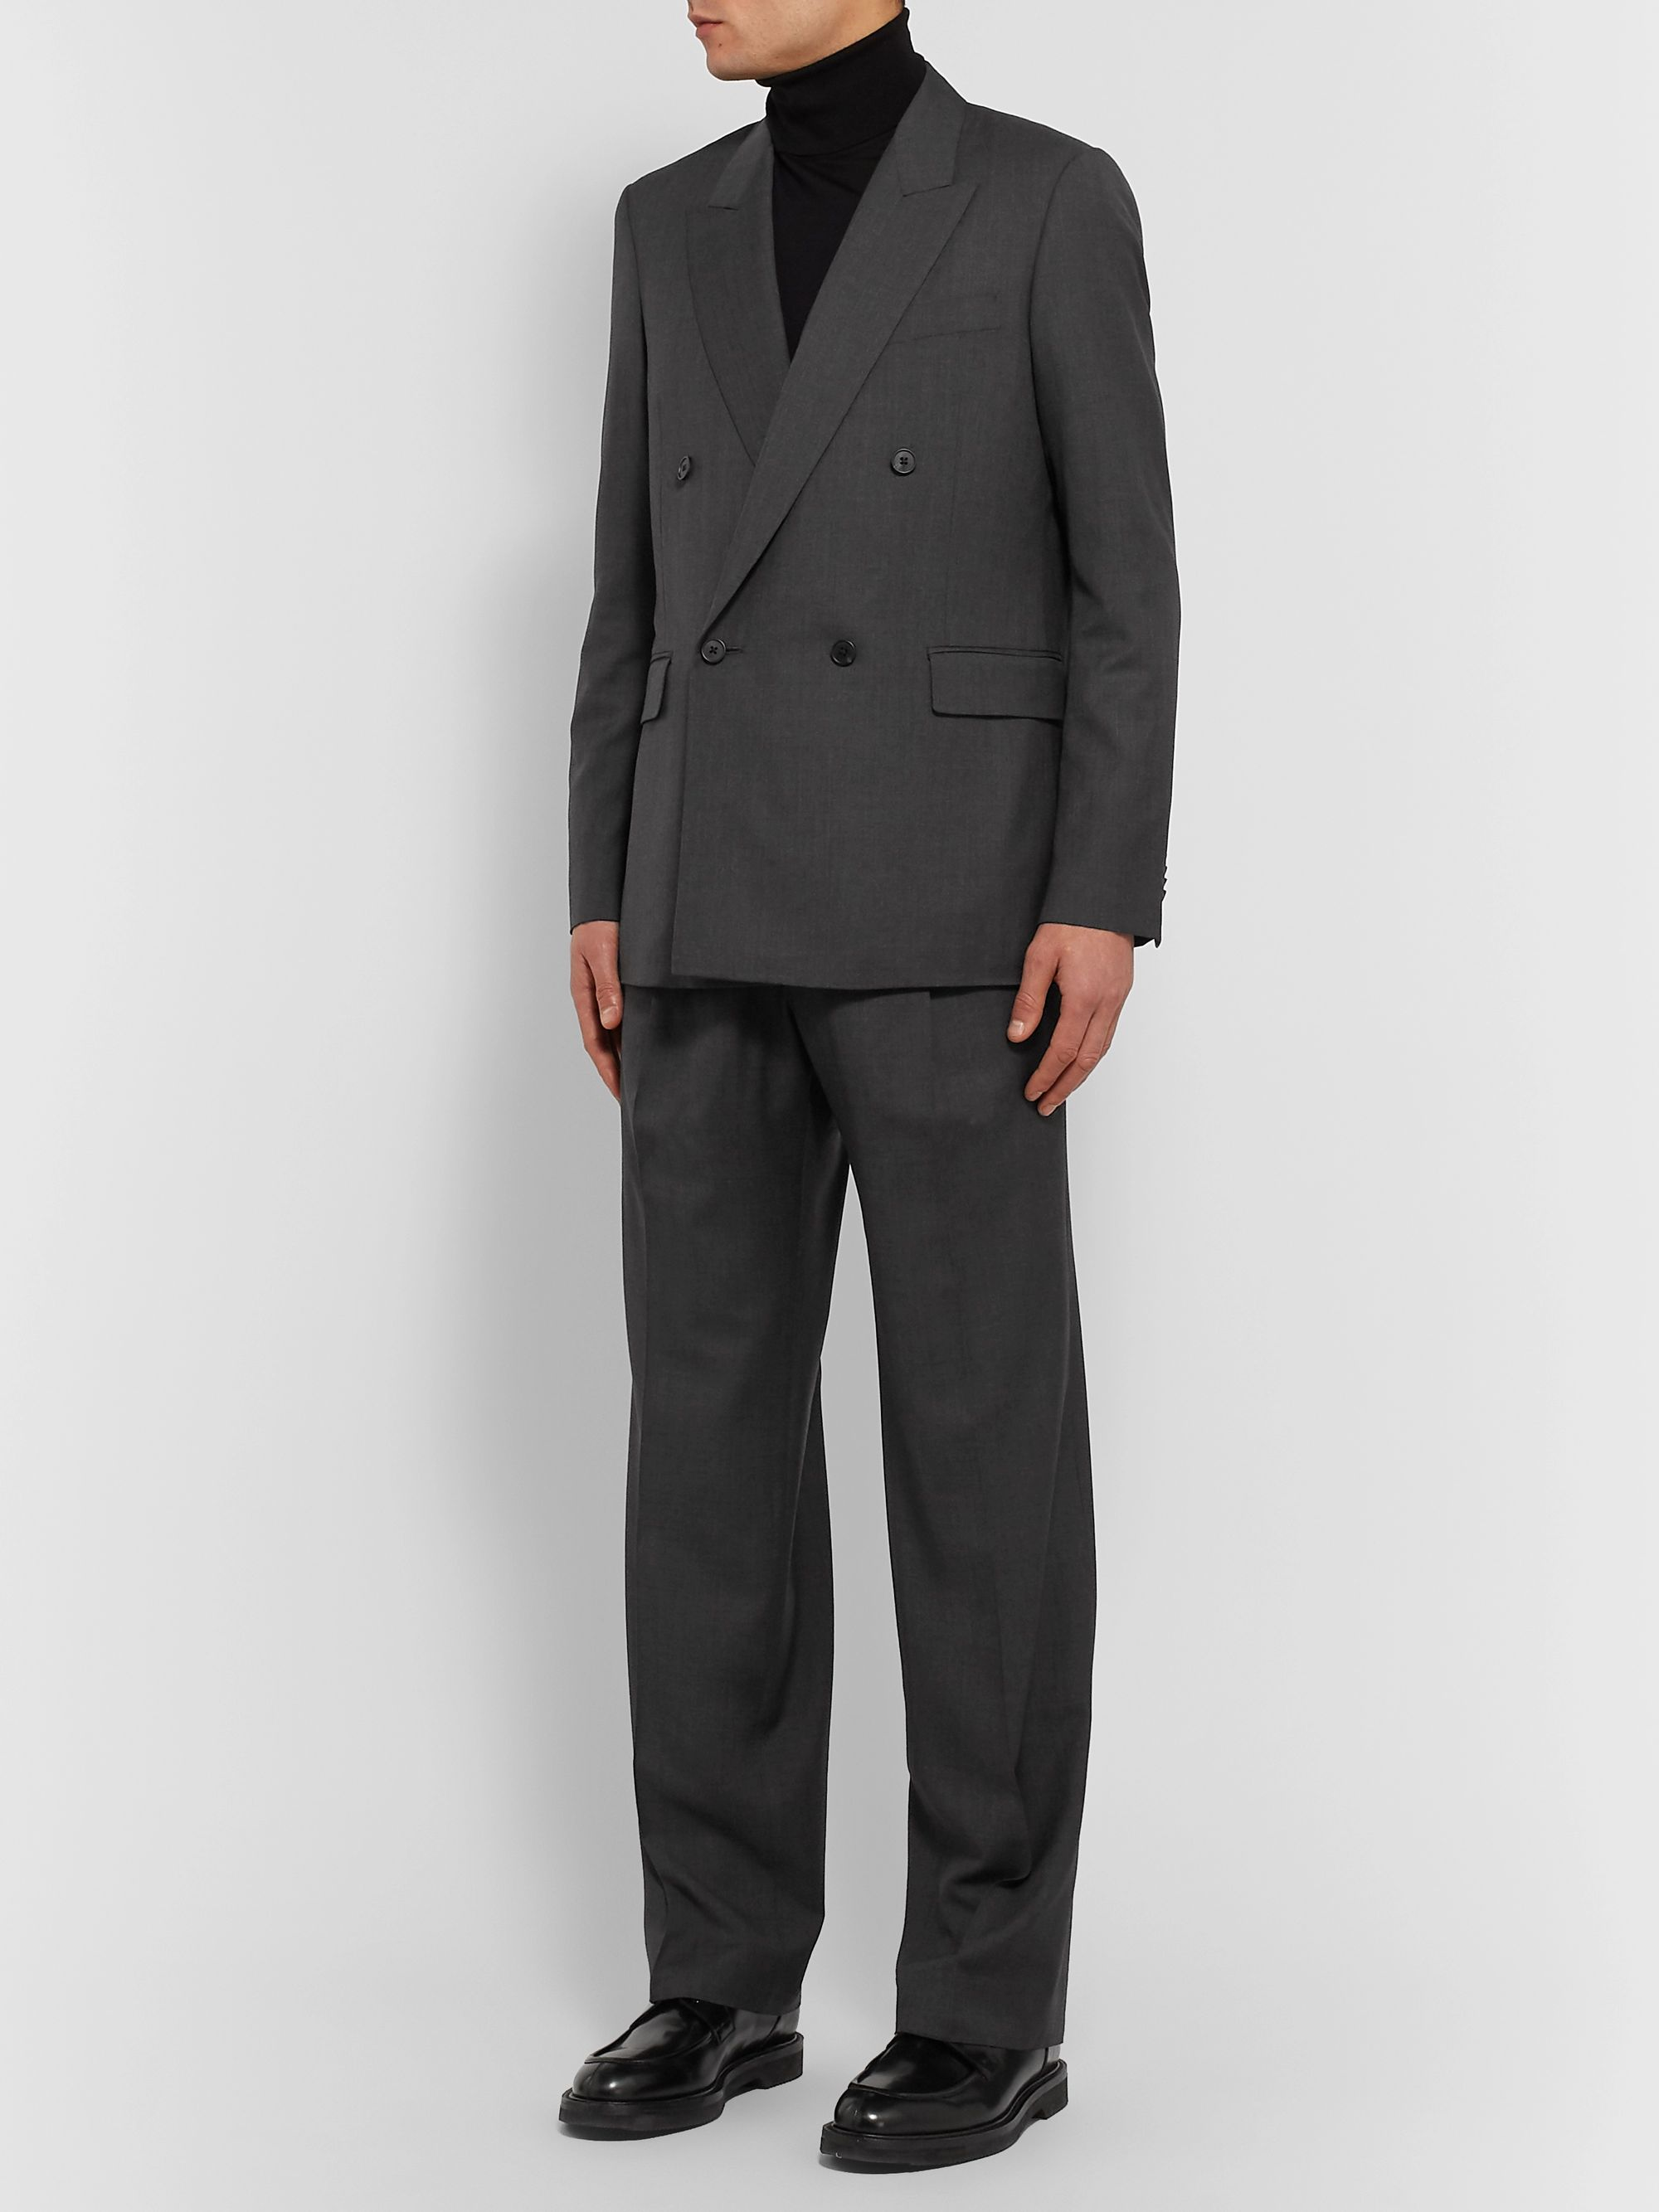 The Row Dark-Grey Martin Wide-Leg Mélange Wool Suit Trousers